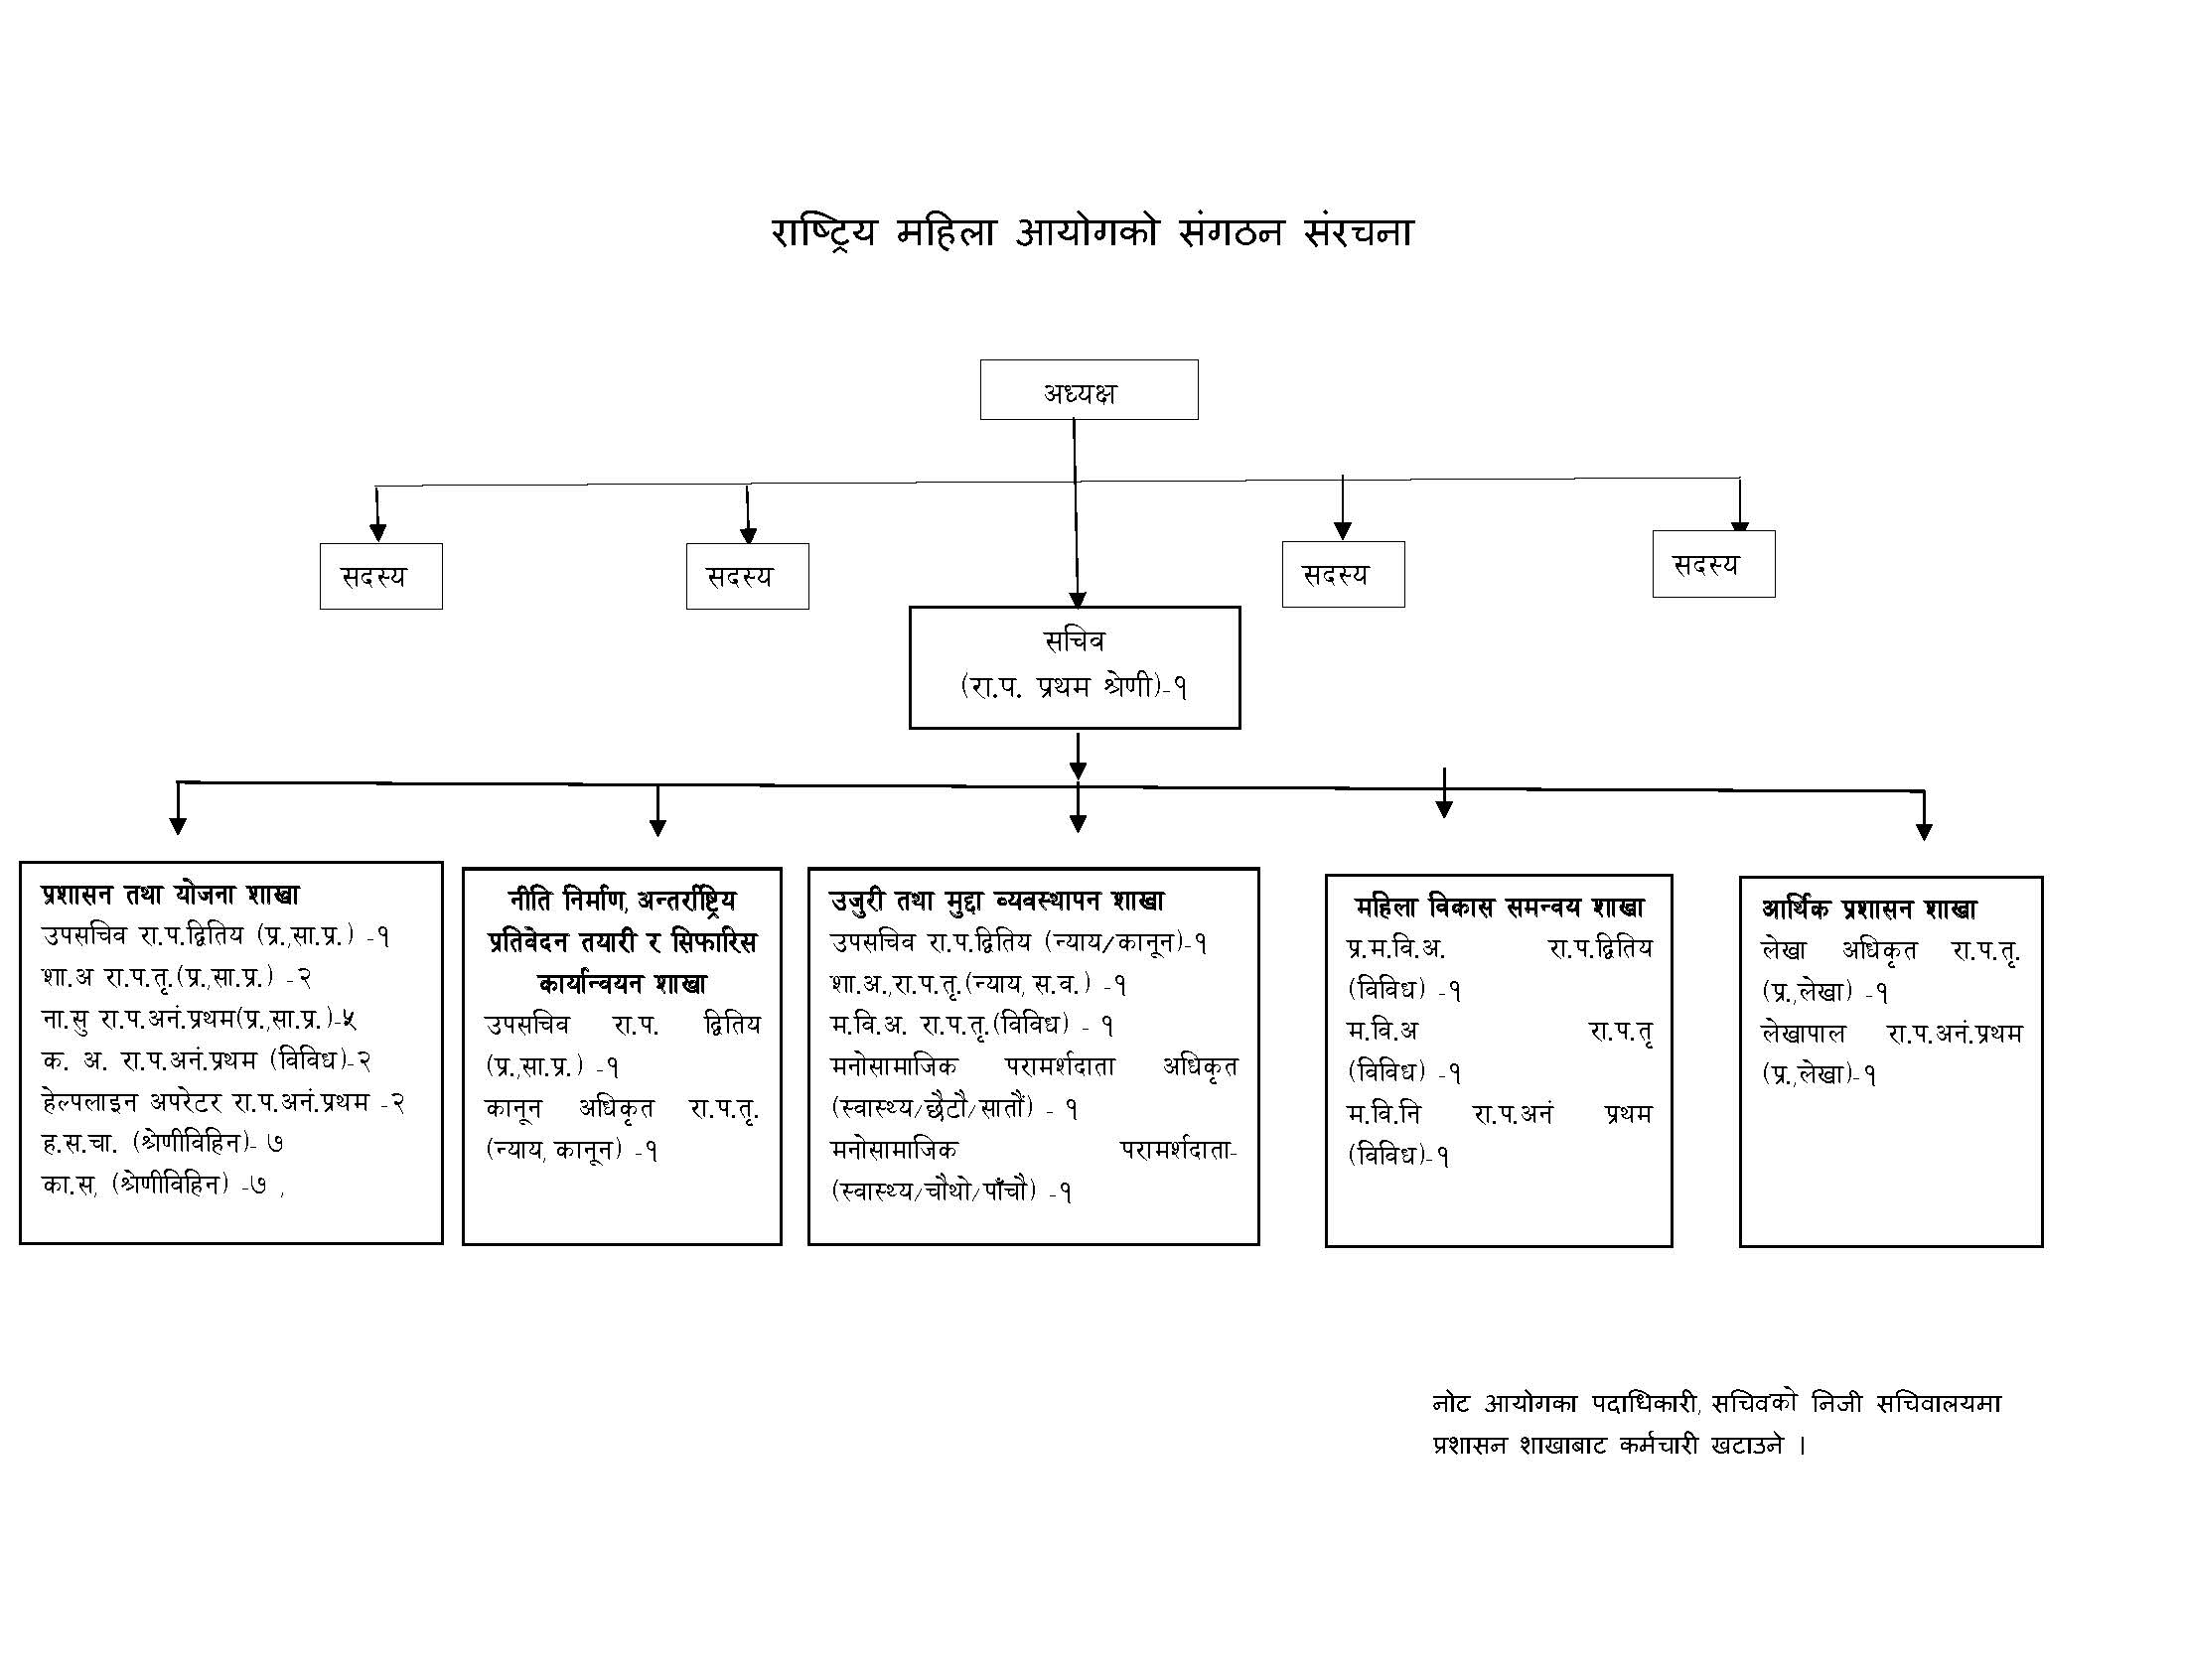 Organization Structure of NWC